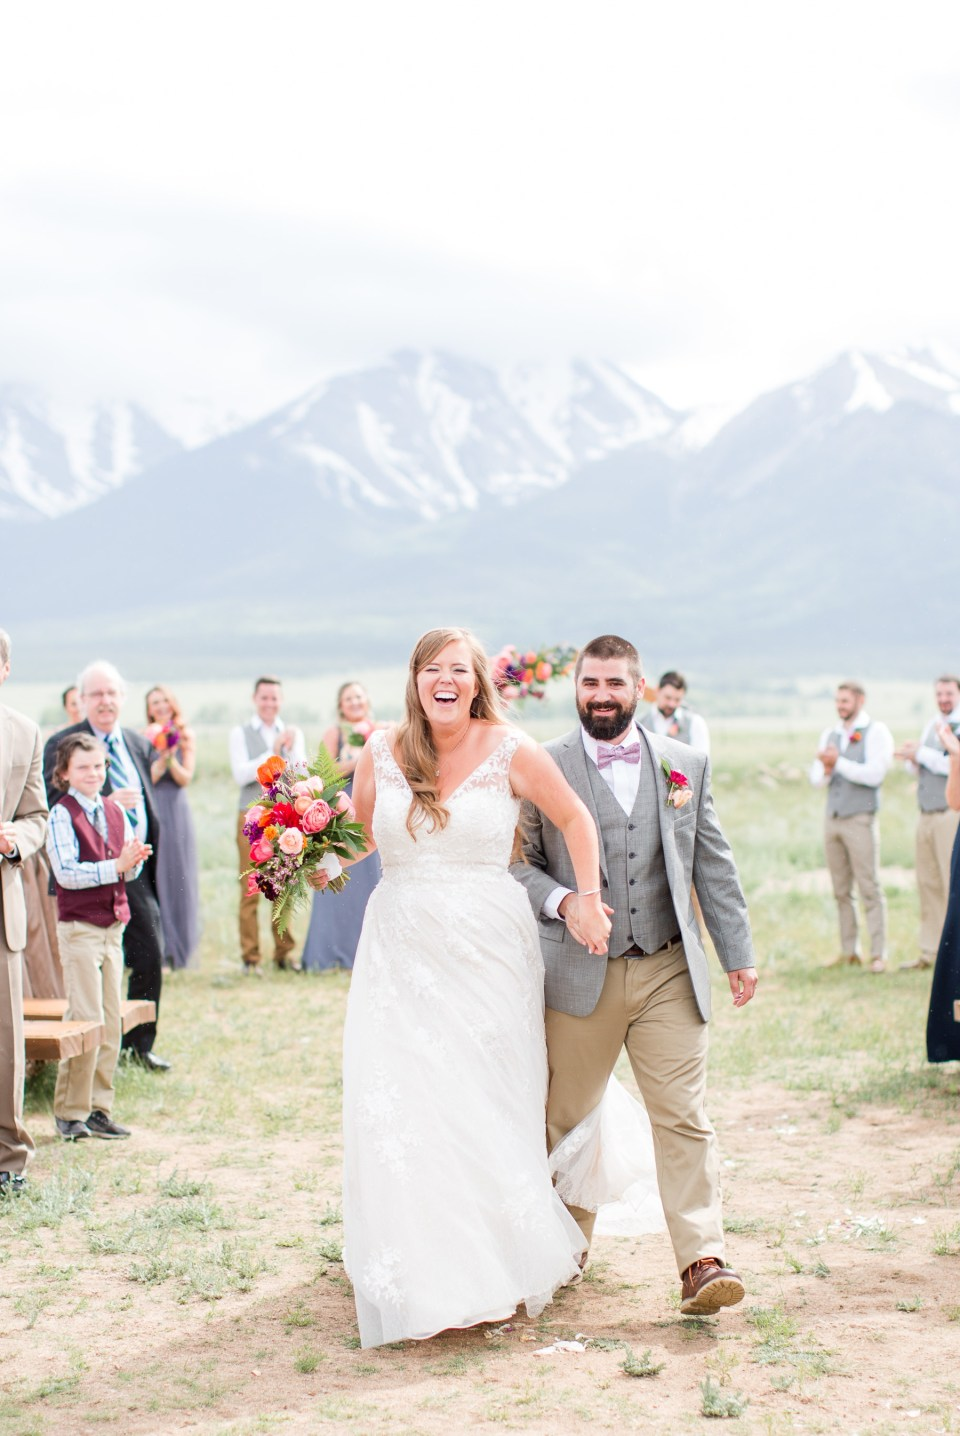 Bride and groom being married at the base of a mountain in Colorado during the spring.